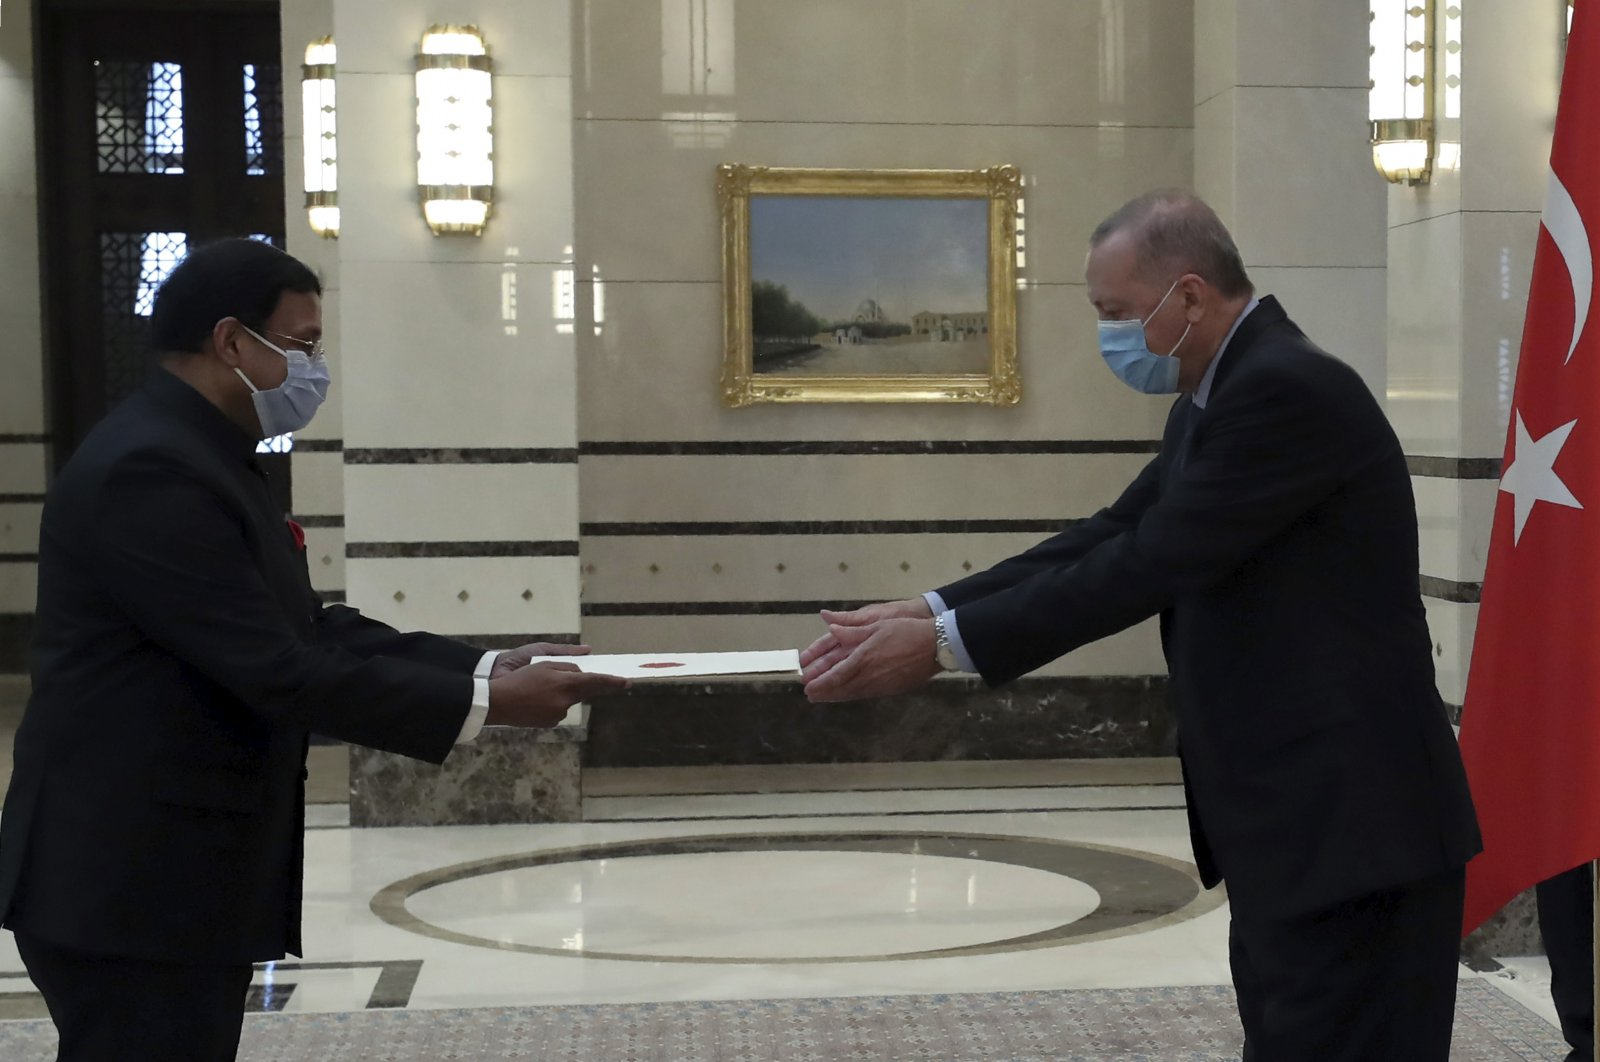 Turkey's President Recep Tayyip Erdoğan, wearing a face mask to protect against the spread of coronavirus, receives a letter of credentials from the new ambassador of India, Sanjay Kumar Panda, during a ceremony at the presidential palace, in Ankara, Turkey, Wednesday, Aug. 19, 2020. (Turkish Presidency via AP, Pool)